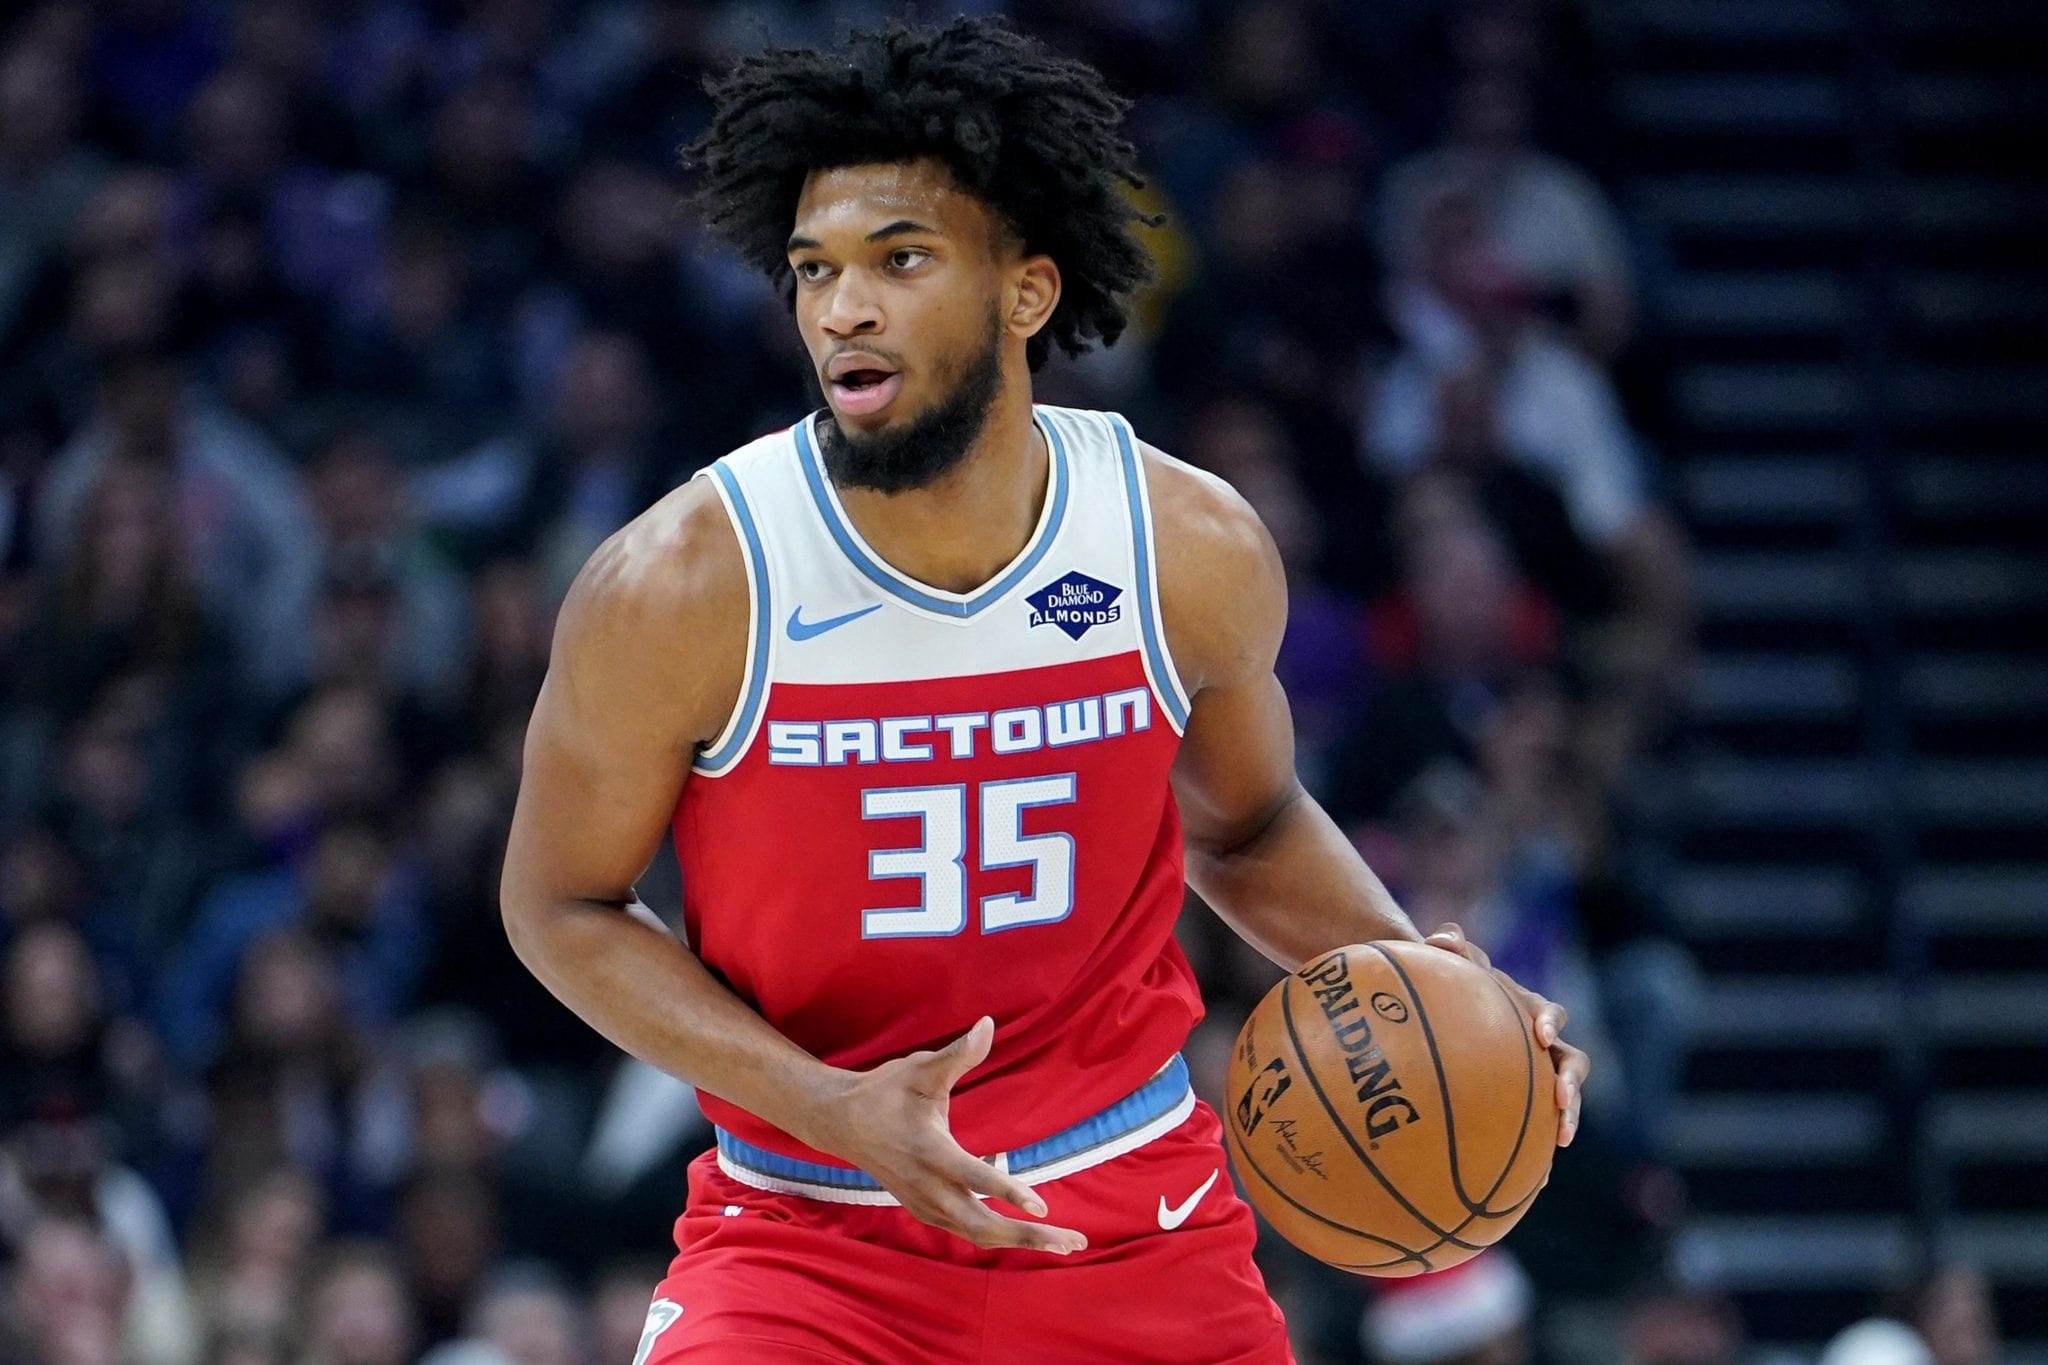 Marvin Bagley's Dad Demands Kings Trade His Son in Deleted Tweet